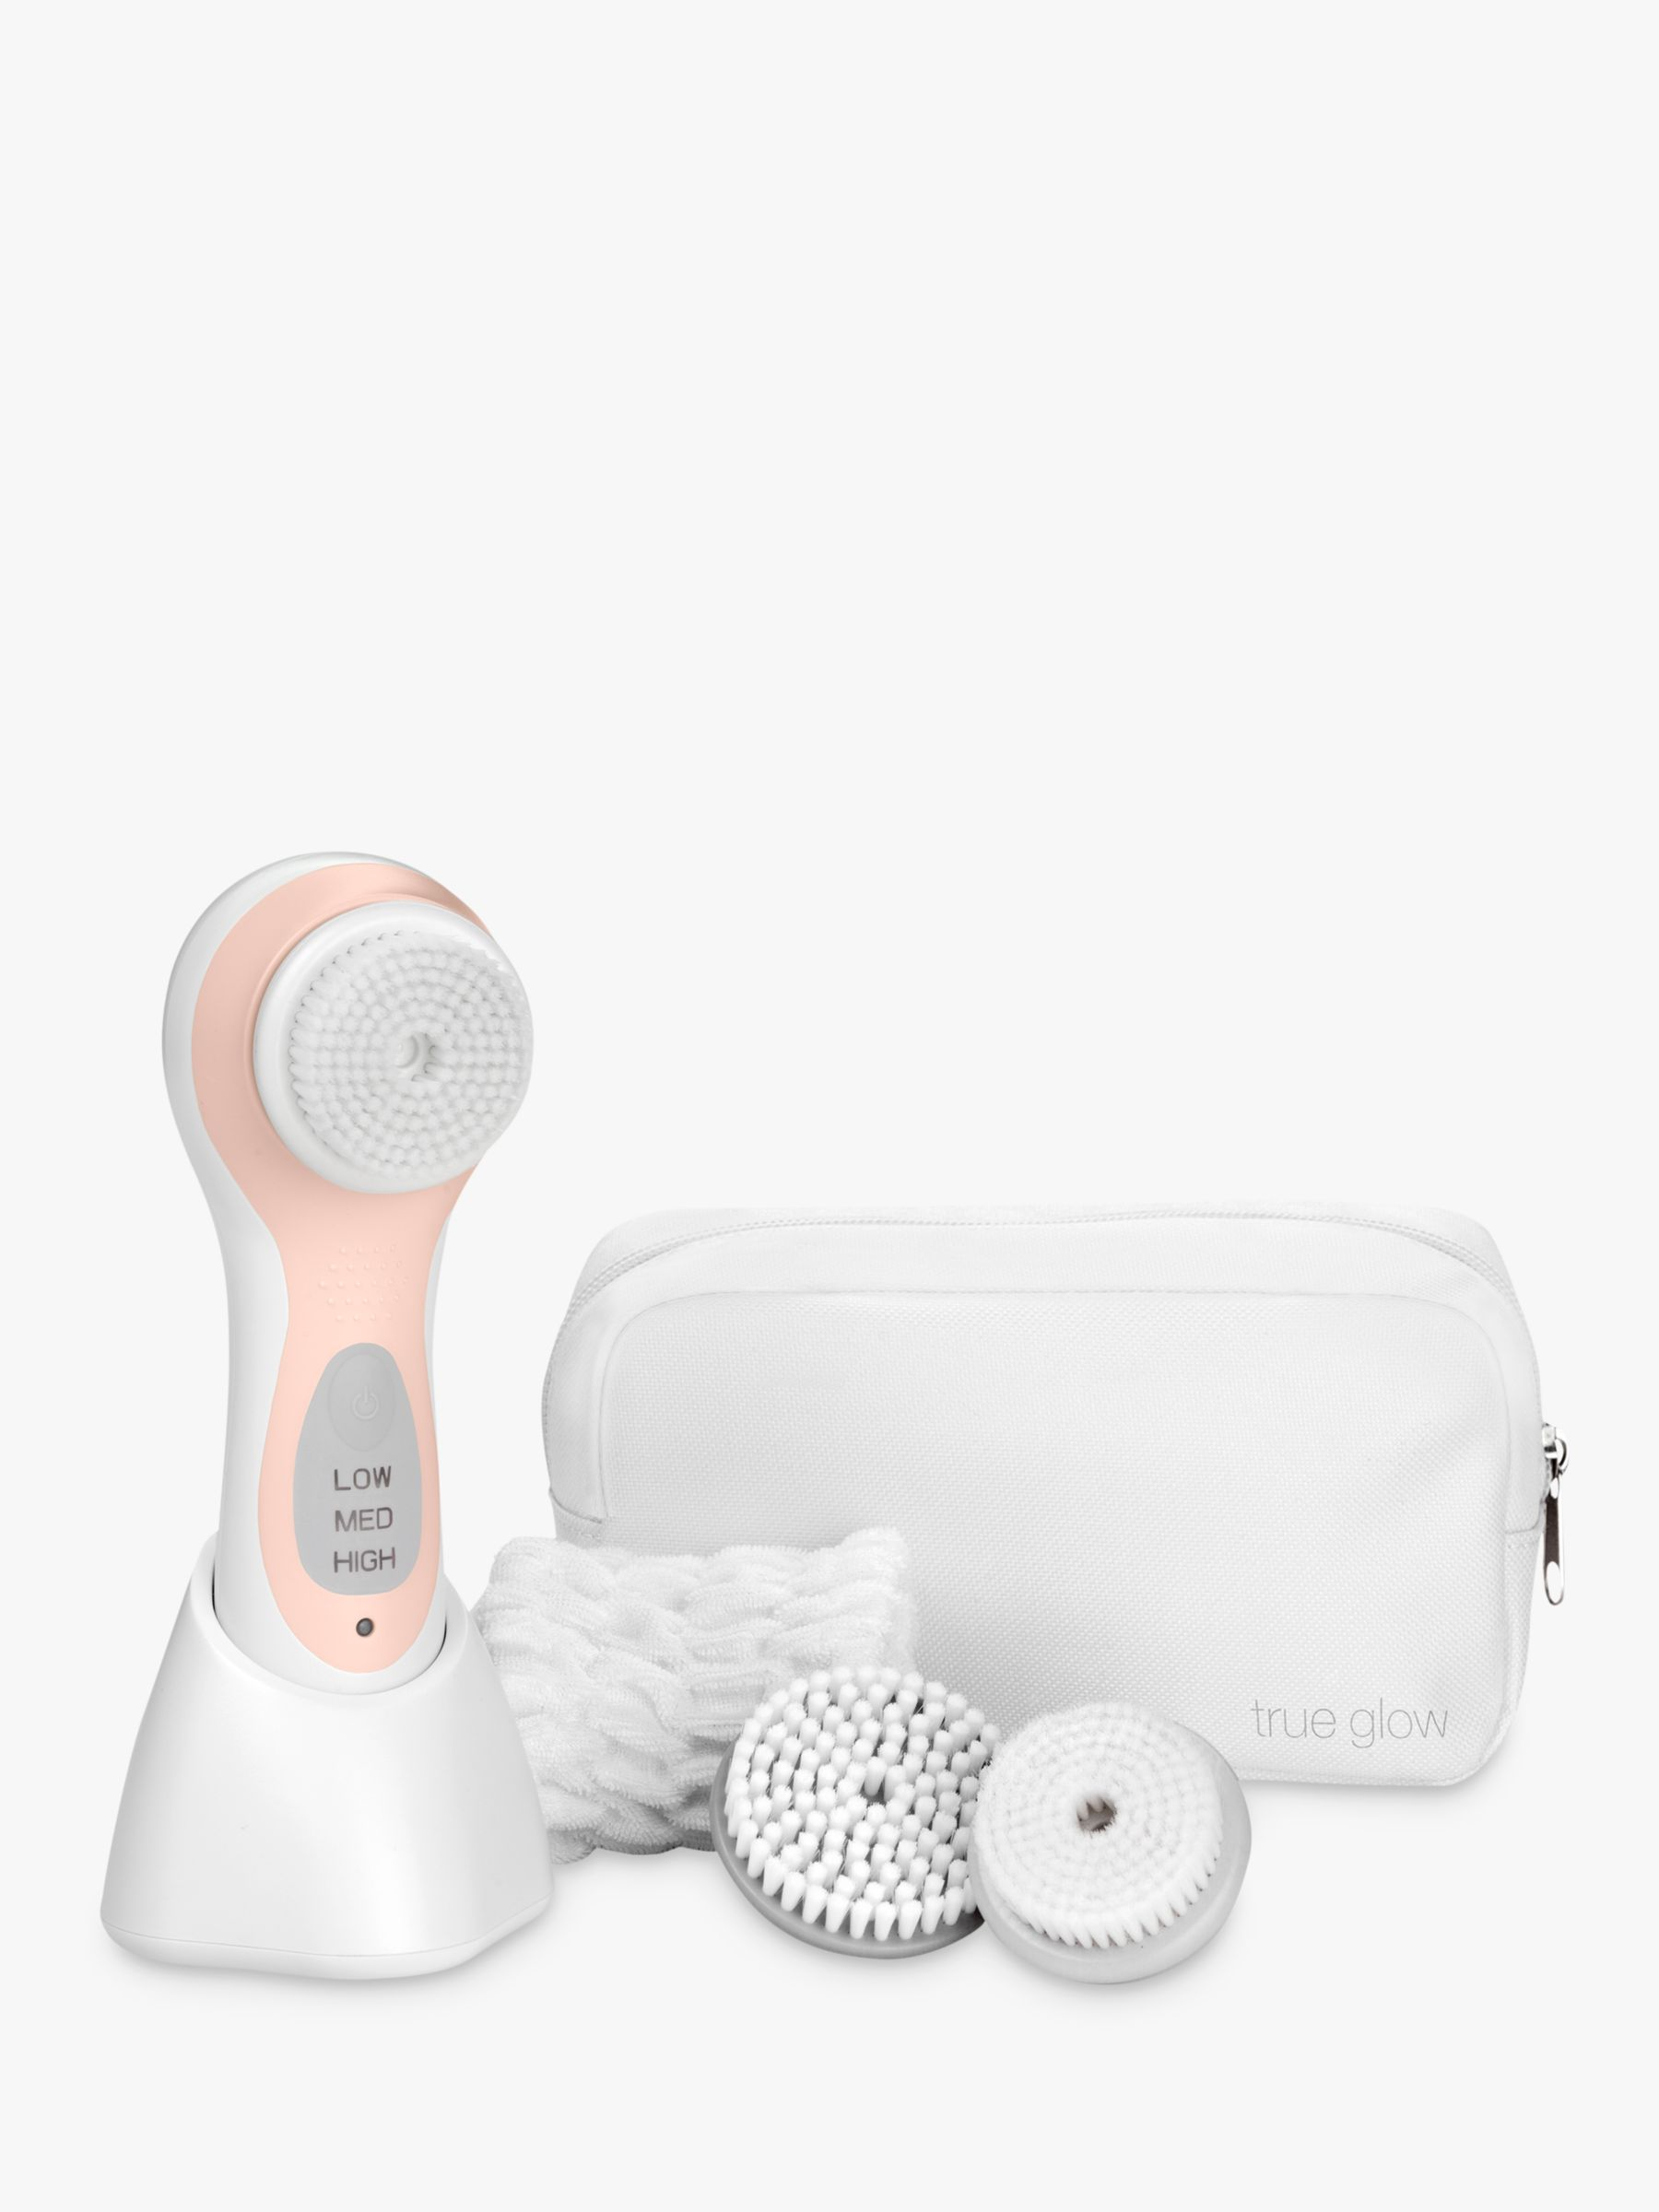 Babyliss BaByliss True Glow Sonic Skincare System